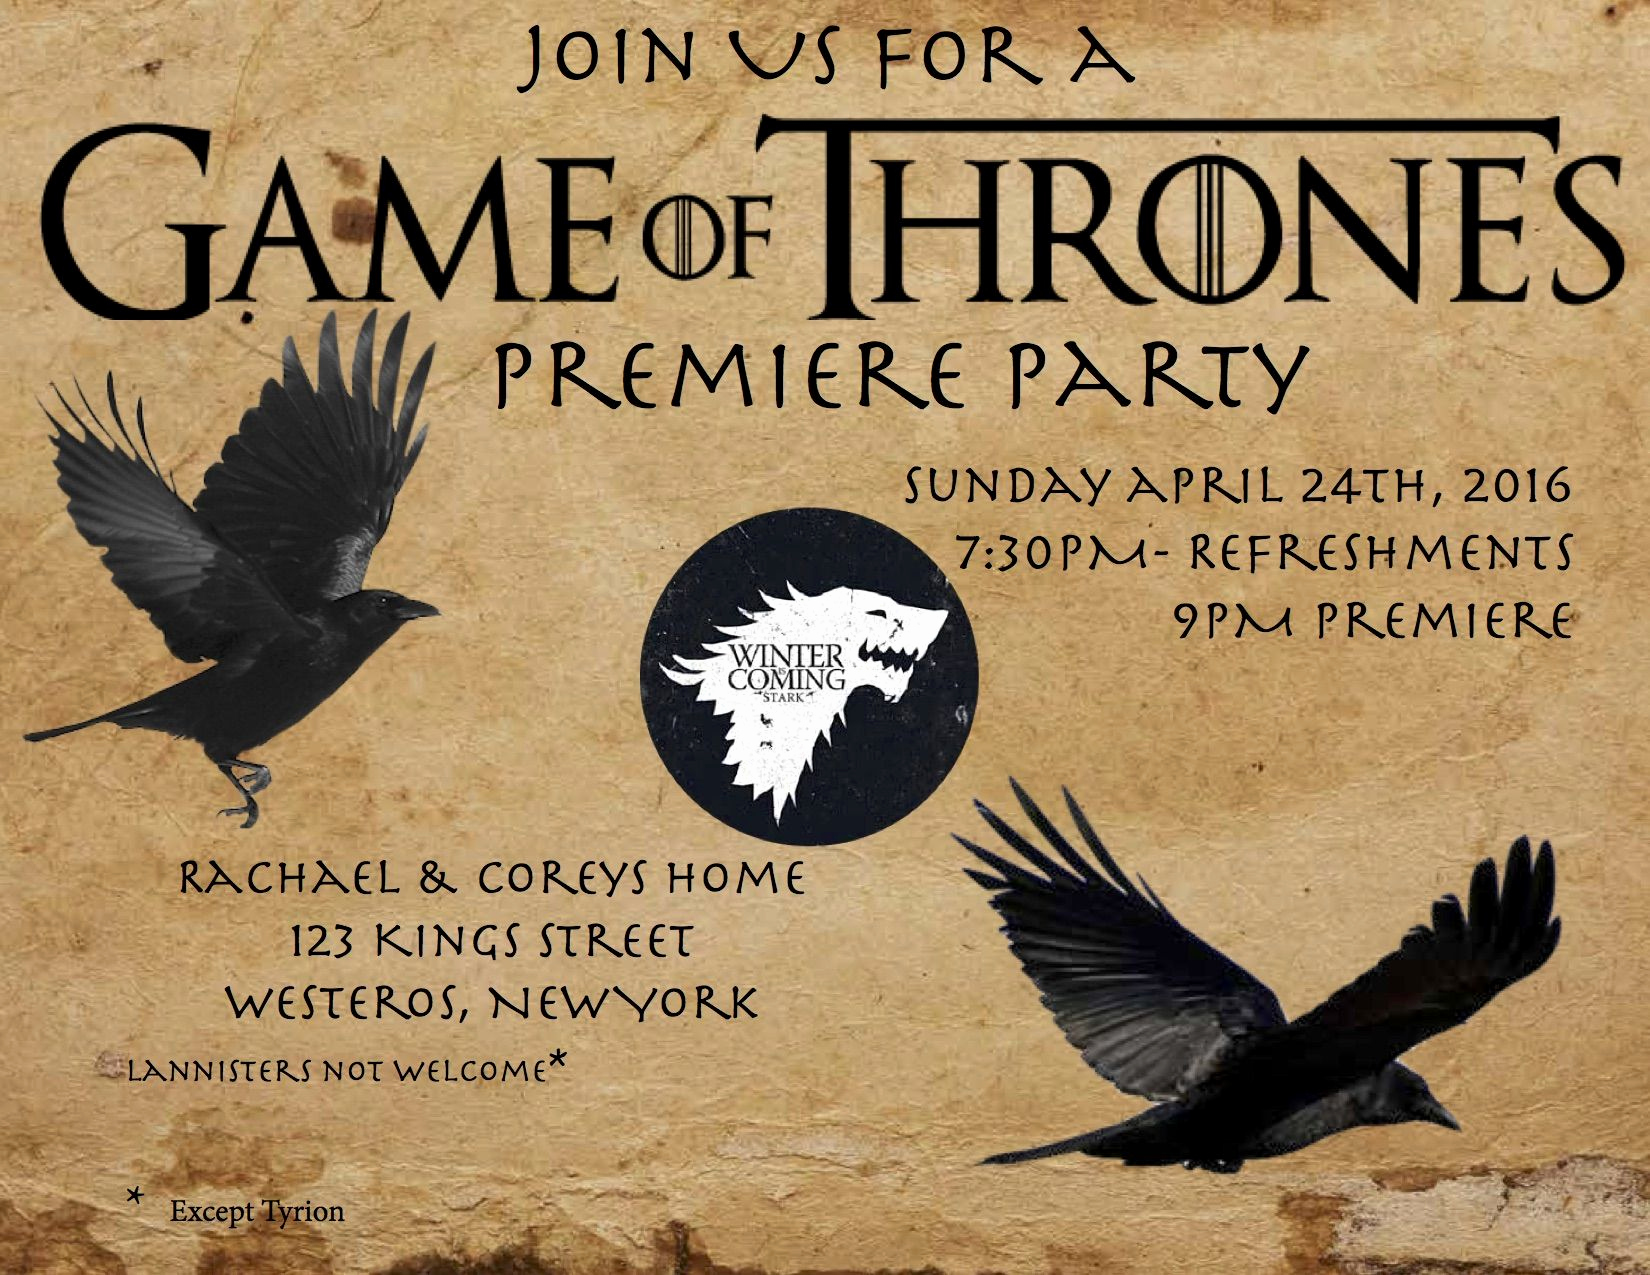 Game Of Thrones Invitation Luxury Game Of Thrones Premiere Party Invitation Inspiration I